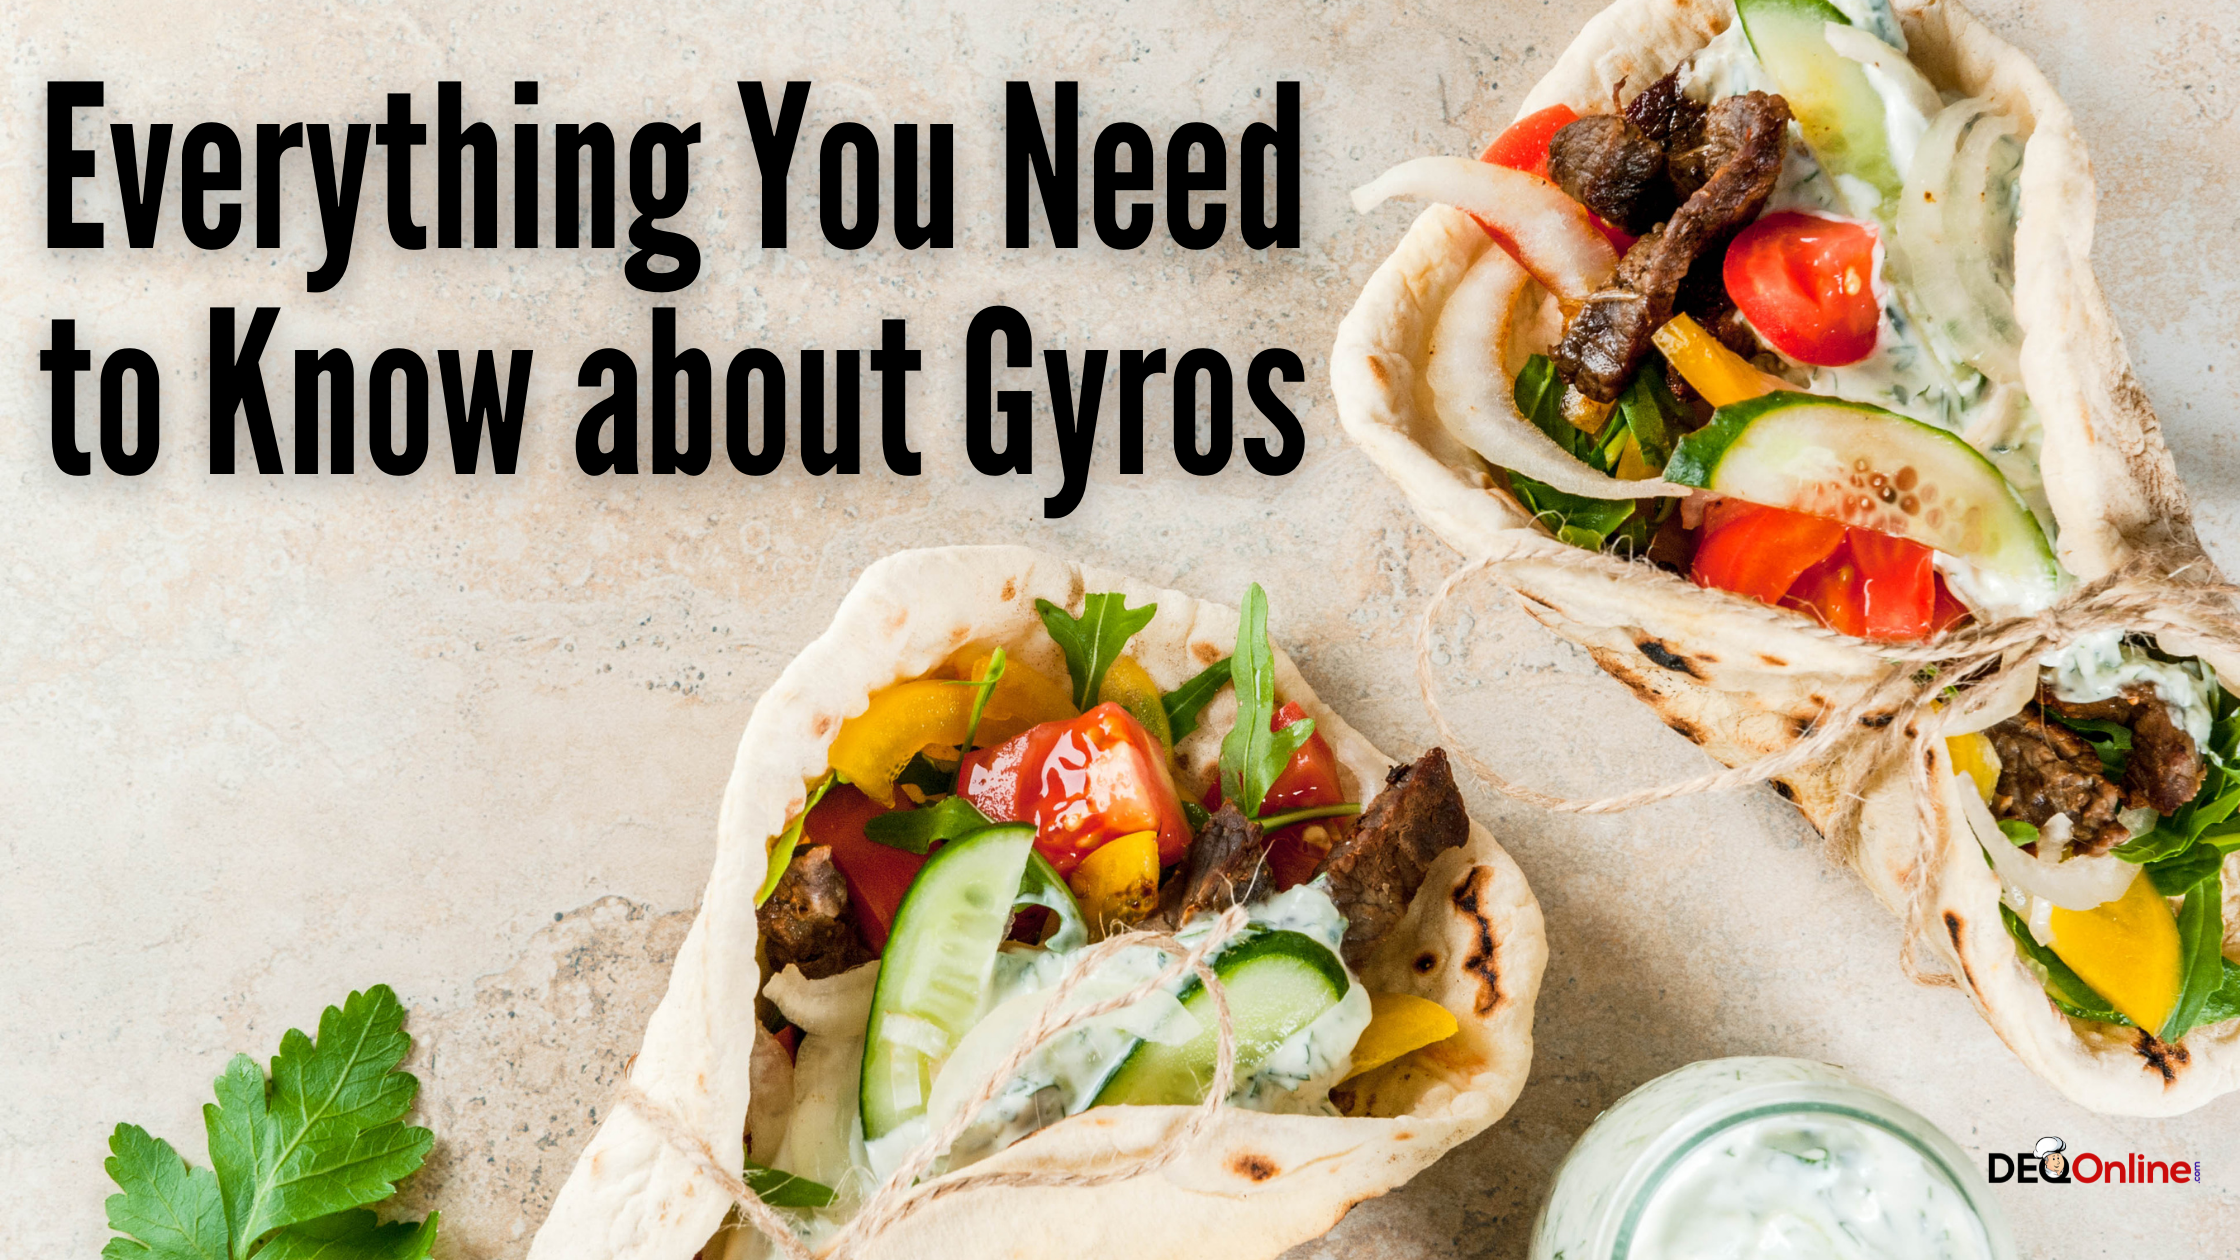 Everything You Need to Know about Gyros